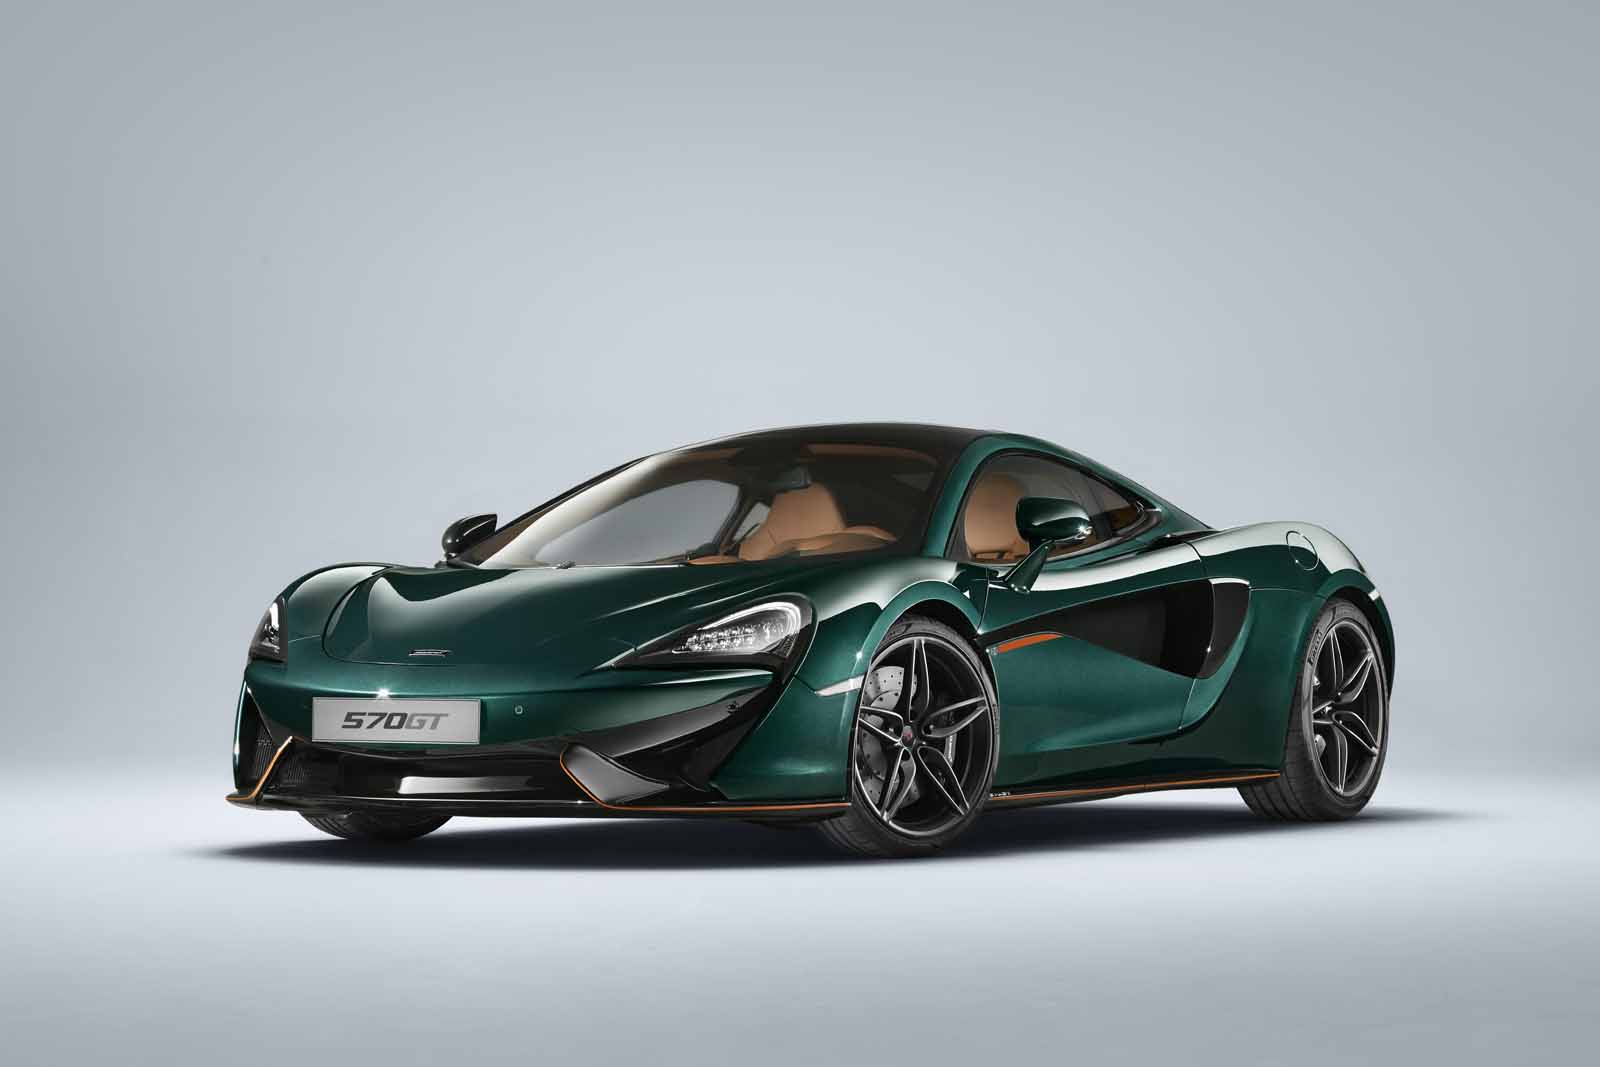 Green machines: McLaren's six 570GT MSO Collection cars in retro XP paint